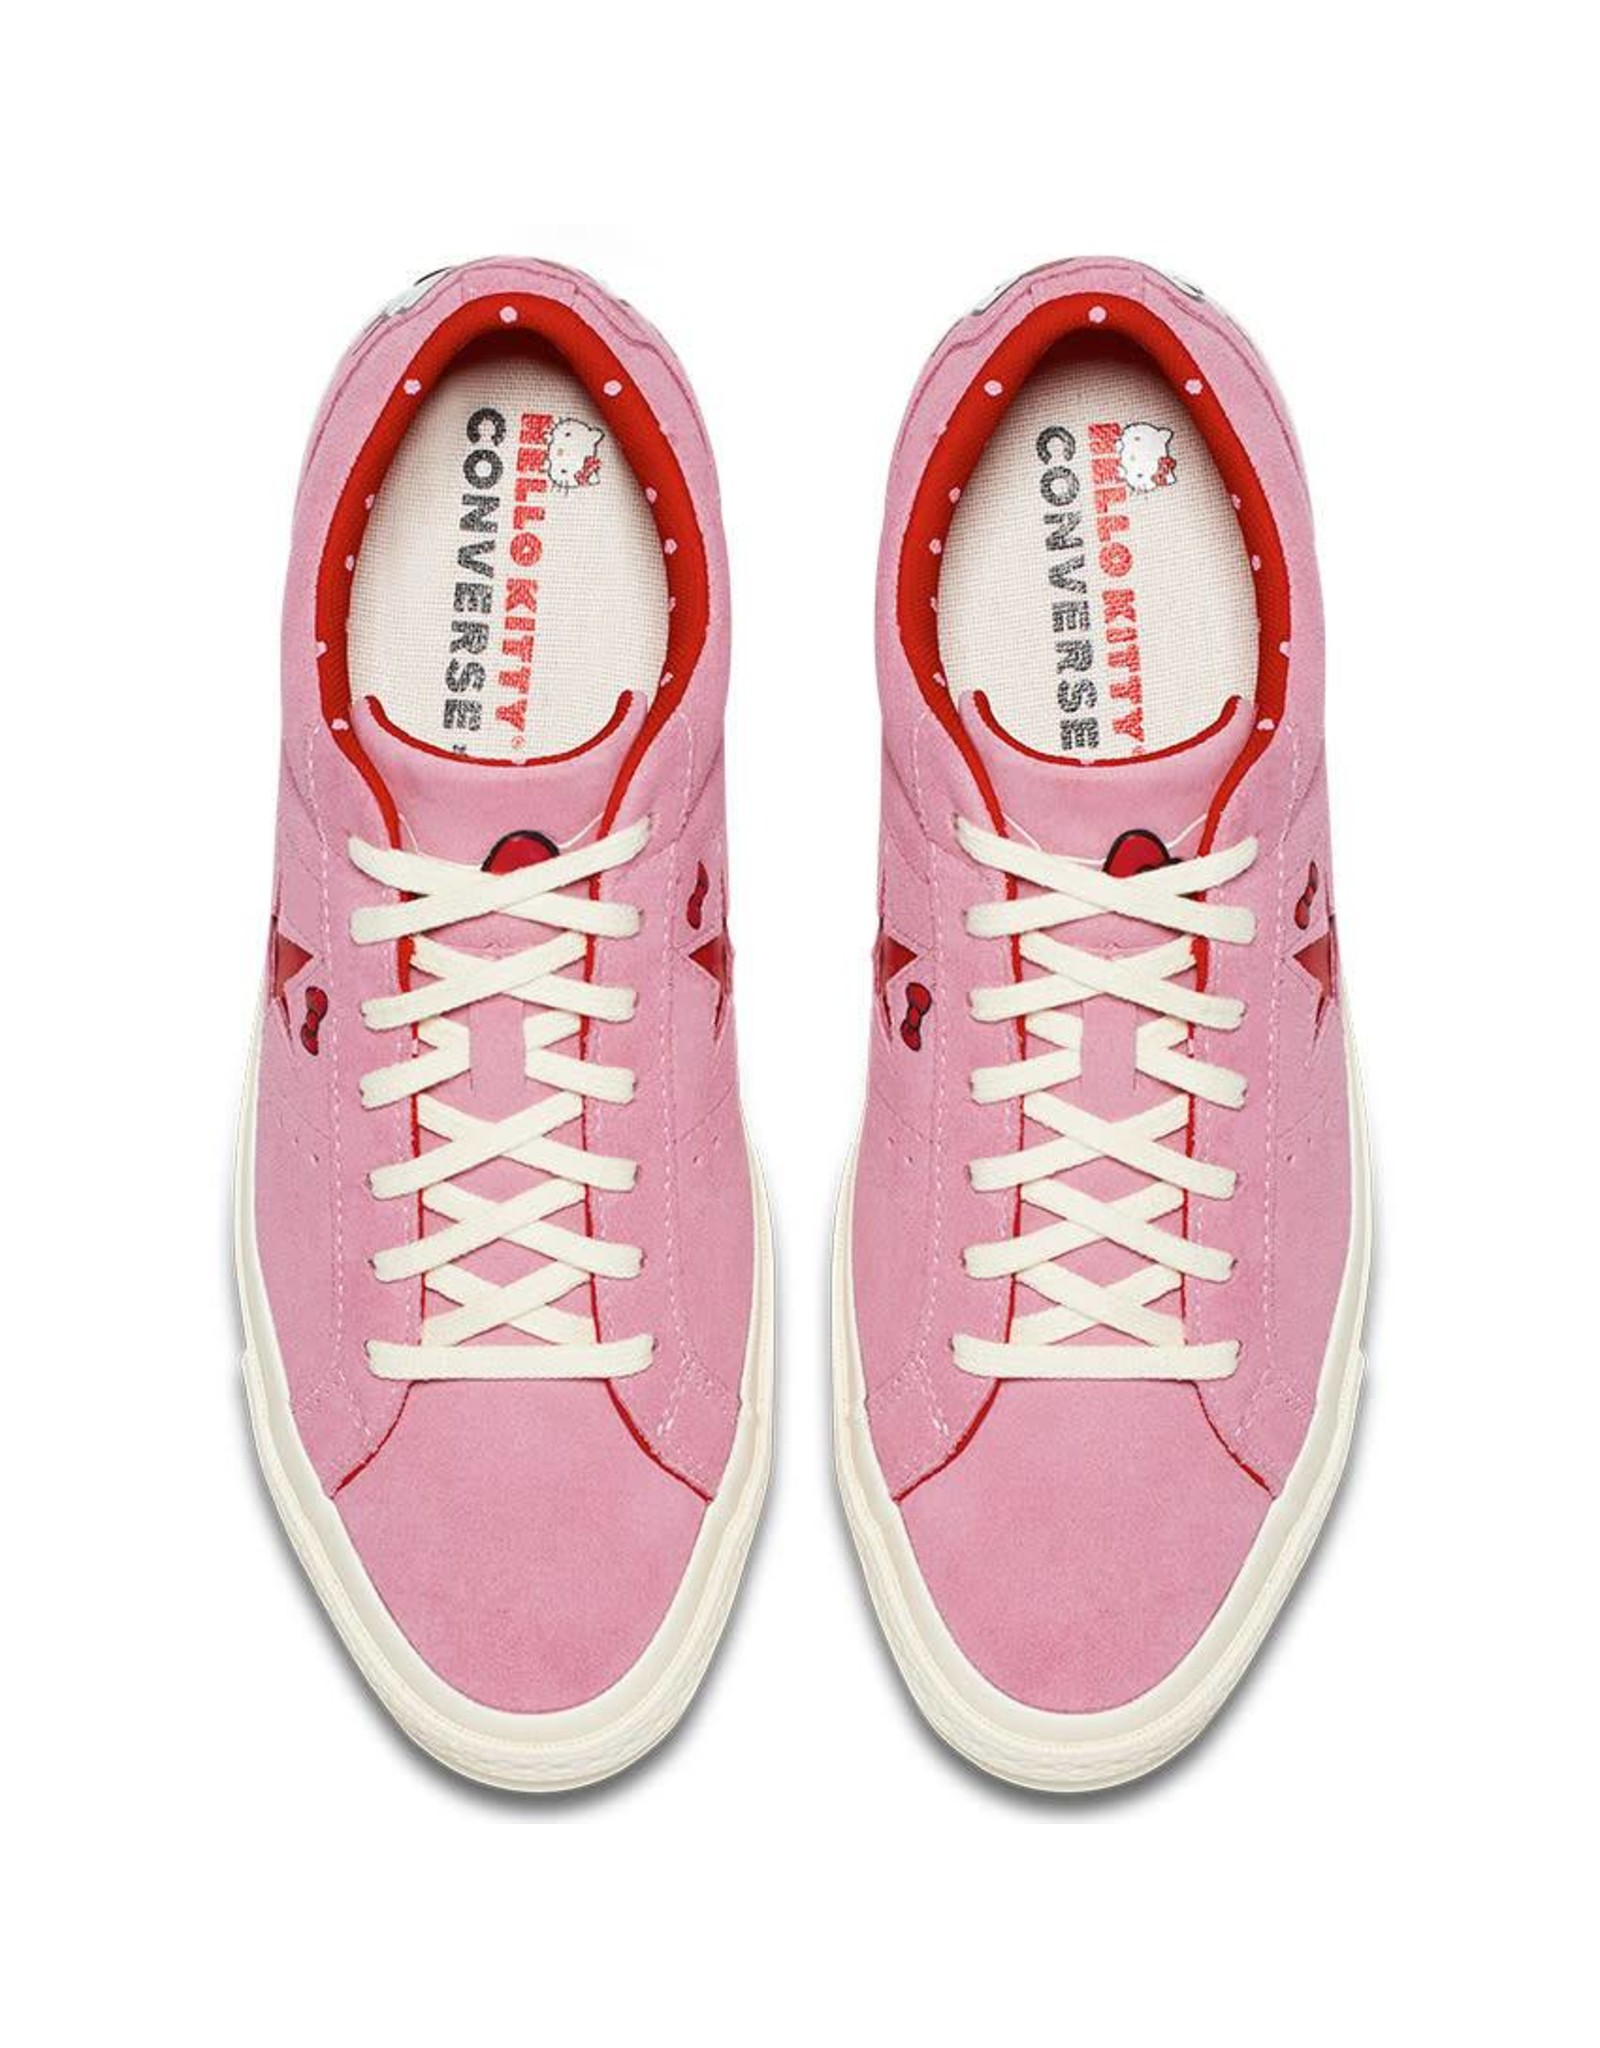 CONVERSE ONE STAR OX PRISM PINK/FIERY RED/EGRET HELLO KITTY CY887HKI-362941C